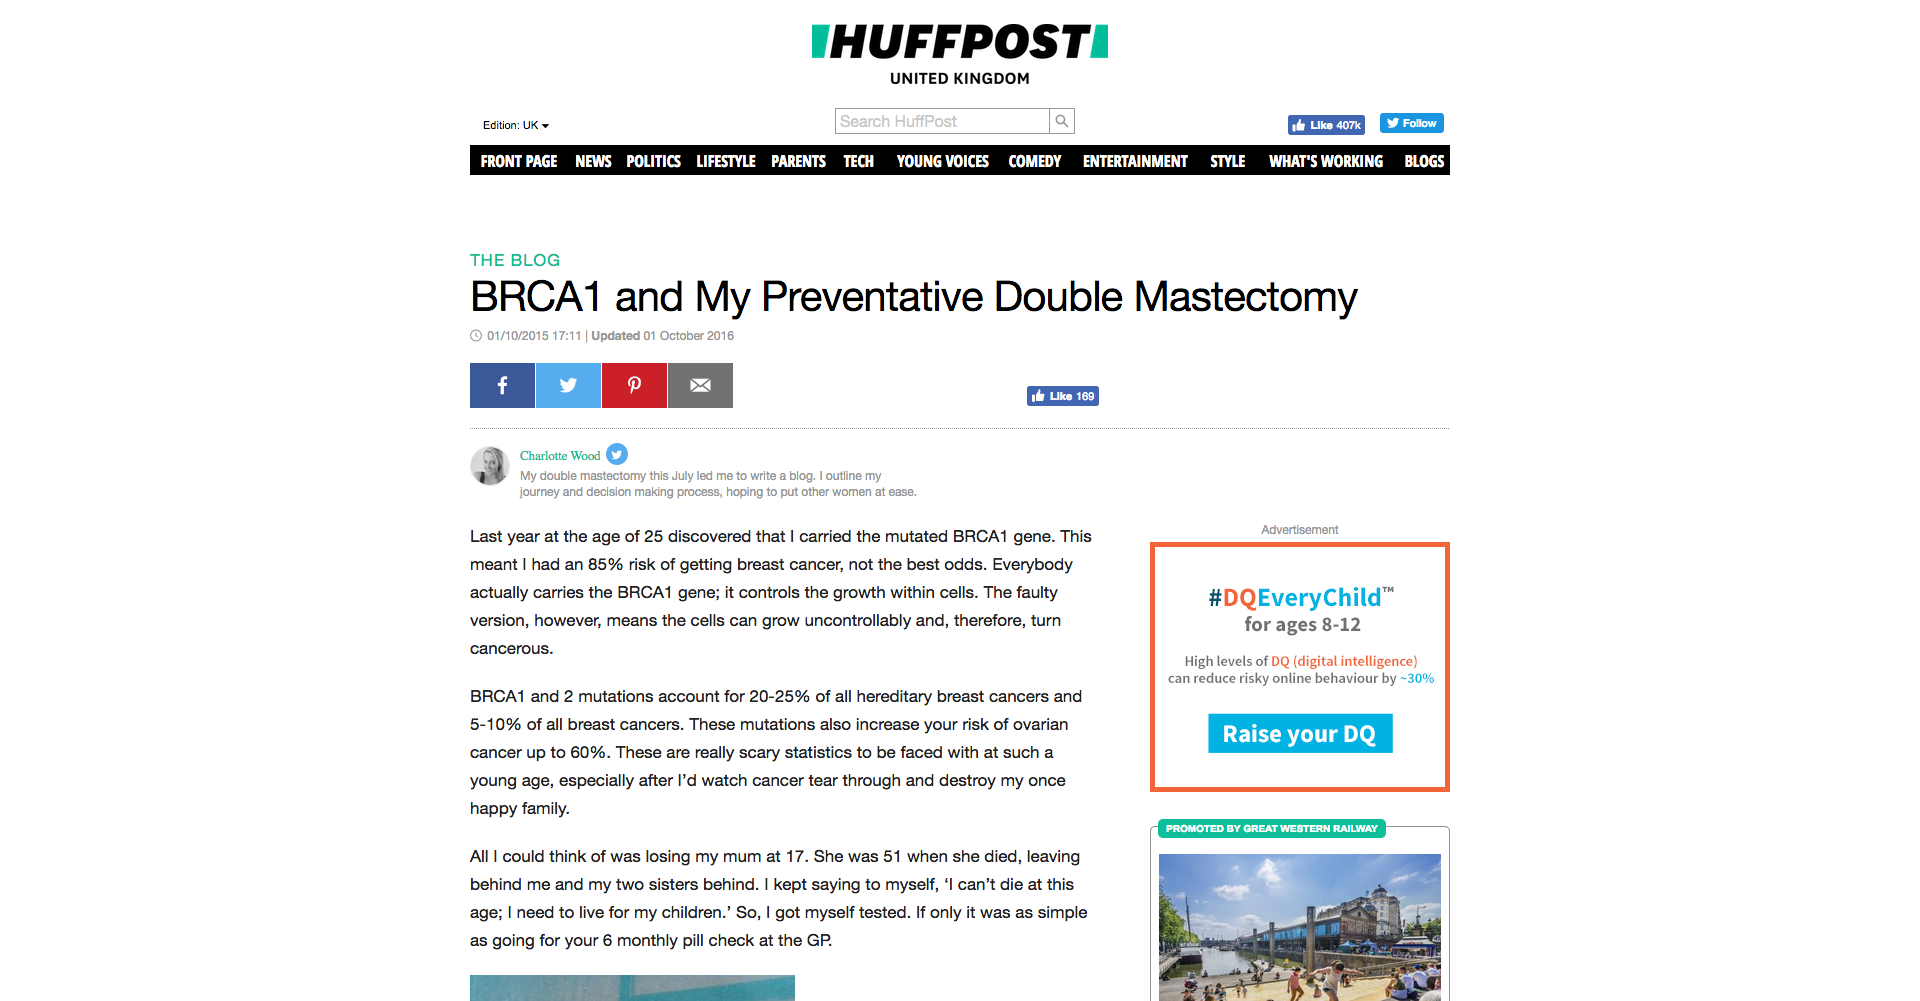 Huffpost Article by Charlotte Wood